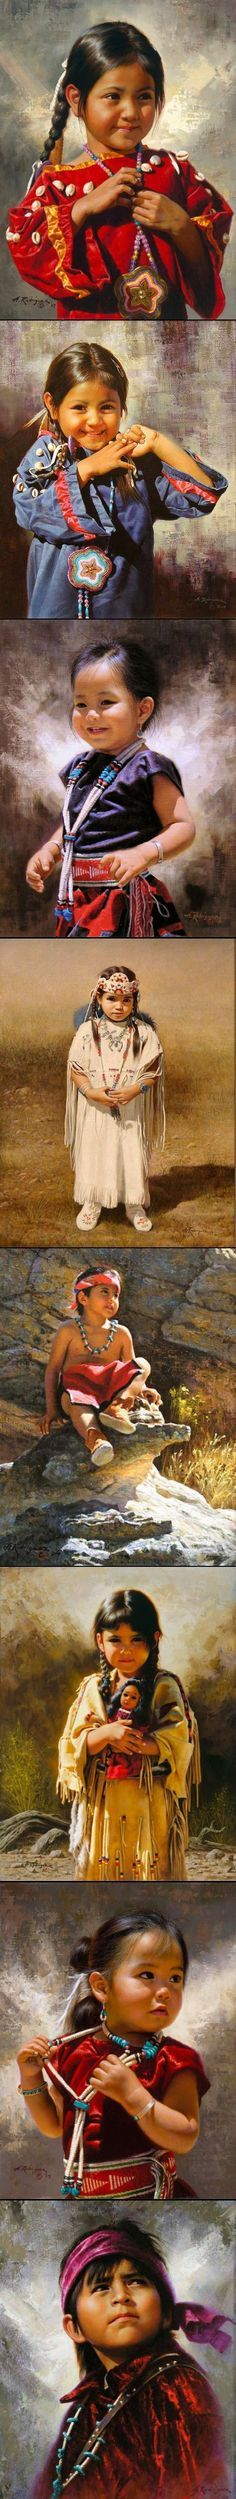 "The beautiful eyes of the Native American children in the oil paintings of Alfredo Rodriguez (1954, American Painter) § ""Alfredo Rodriguez (1954, American)"" by Marco from I am a Child ~ children in art history (http://iamachild.wordpress.com). Blog posted on May 24, 2011. § Collage created via http://pinthemall.net:"